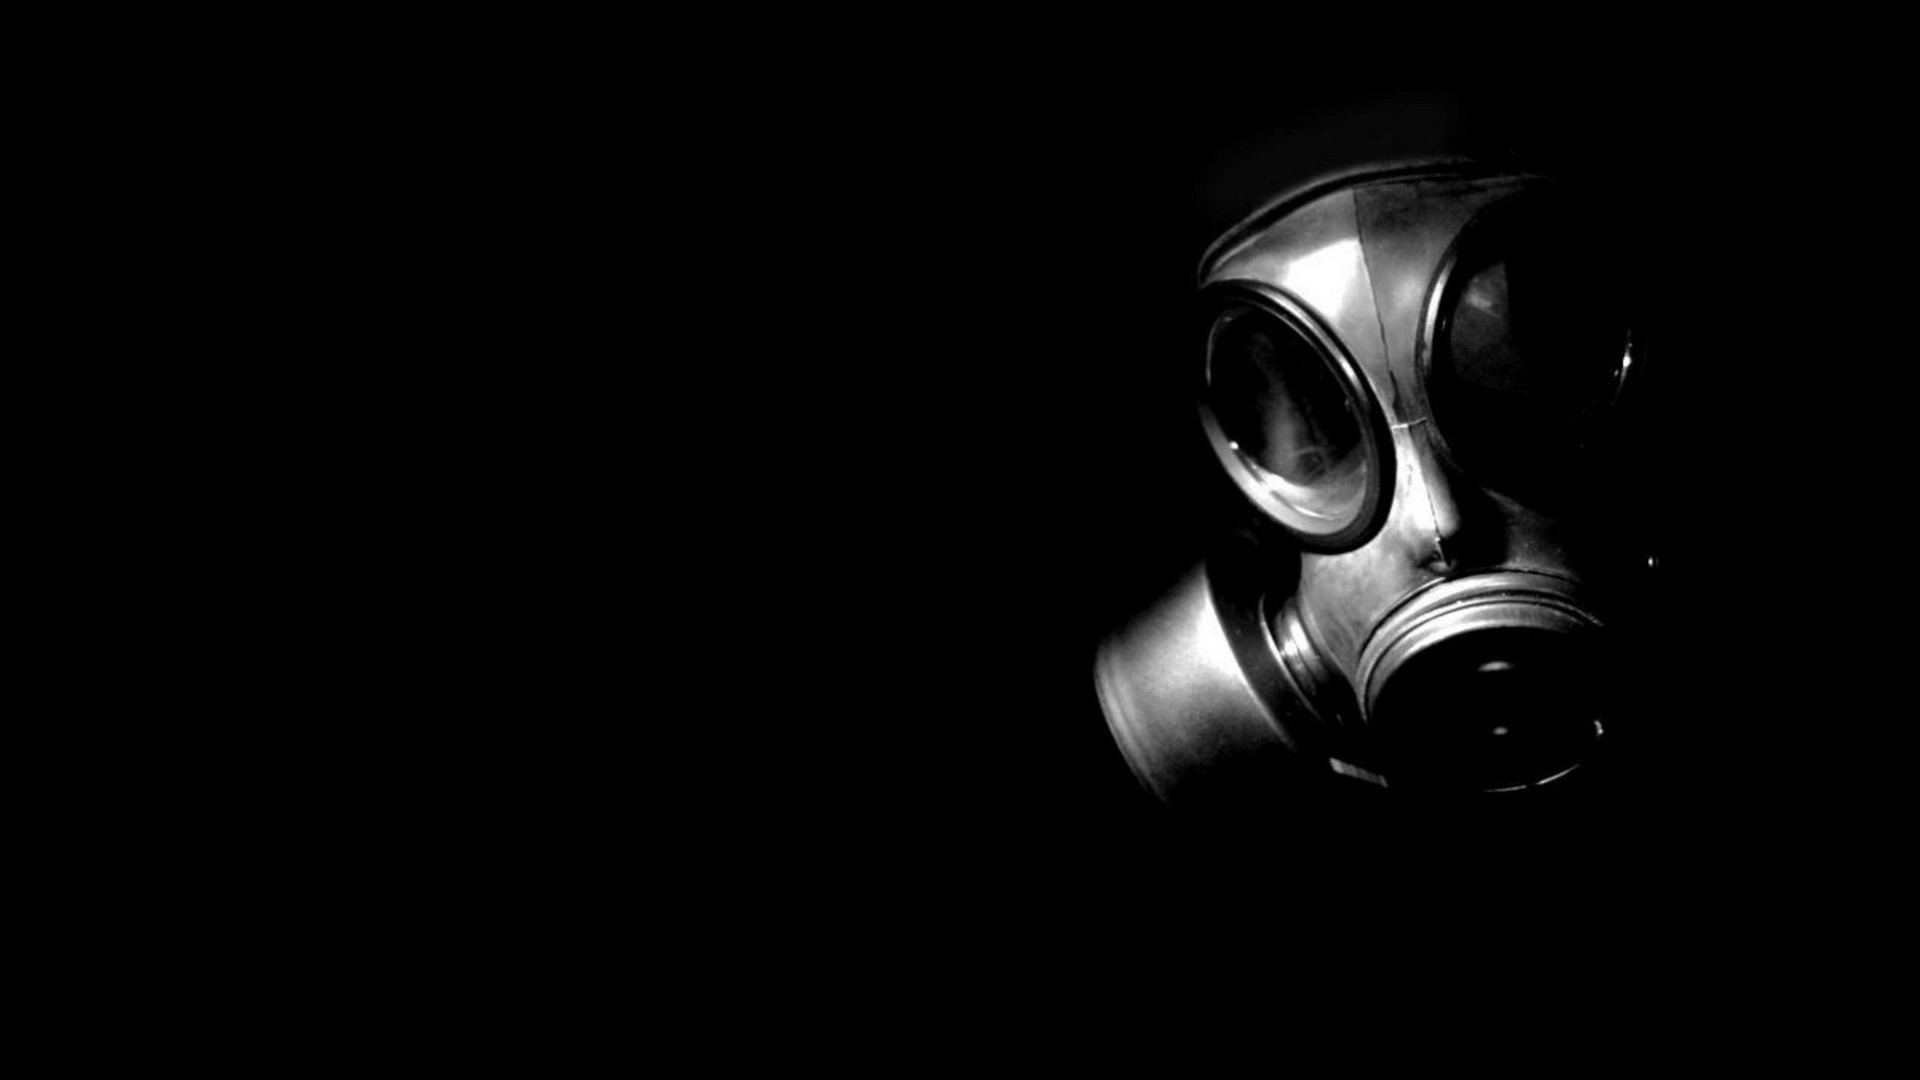 1920x1080 Gas Mask wallpaper 230124